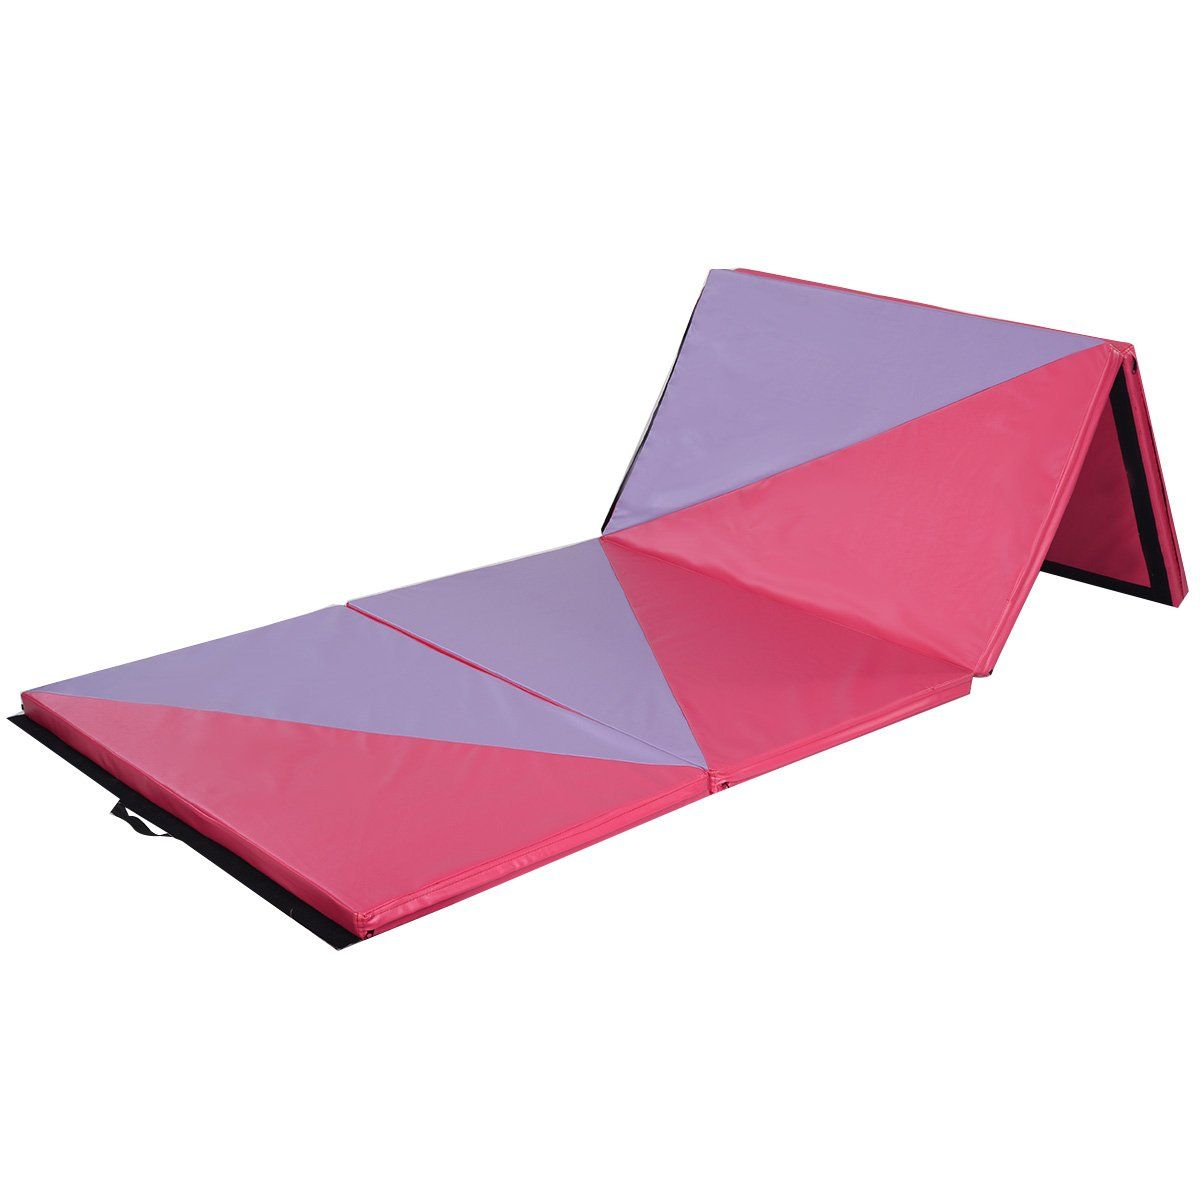 product costway folding gym mat mats fitness costwat panel gymnastics thick shop rakuten pu pink